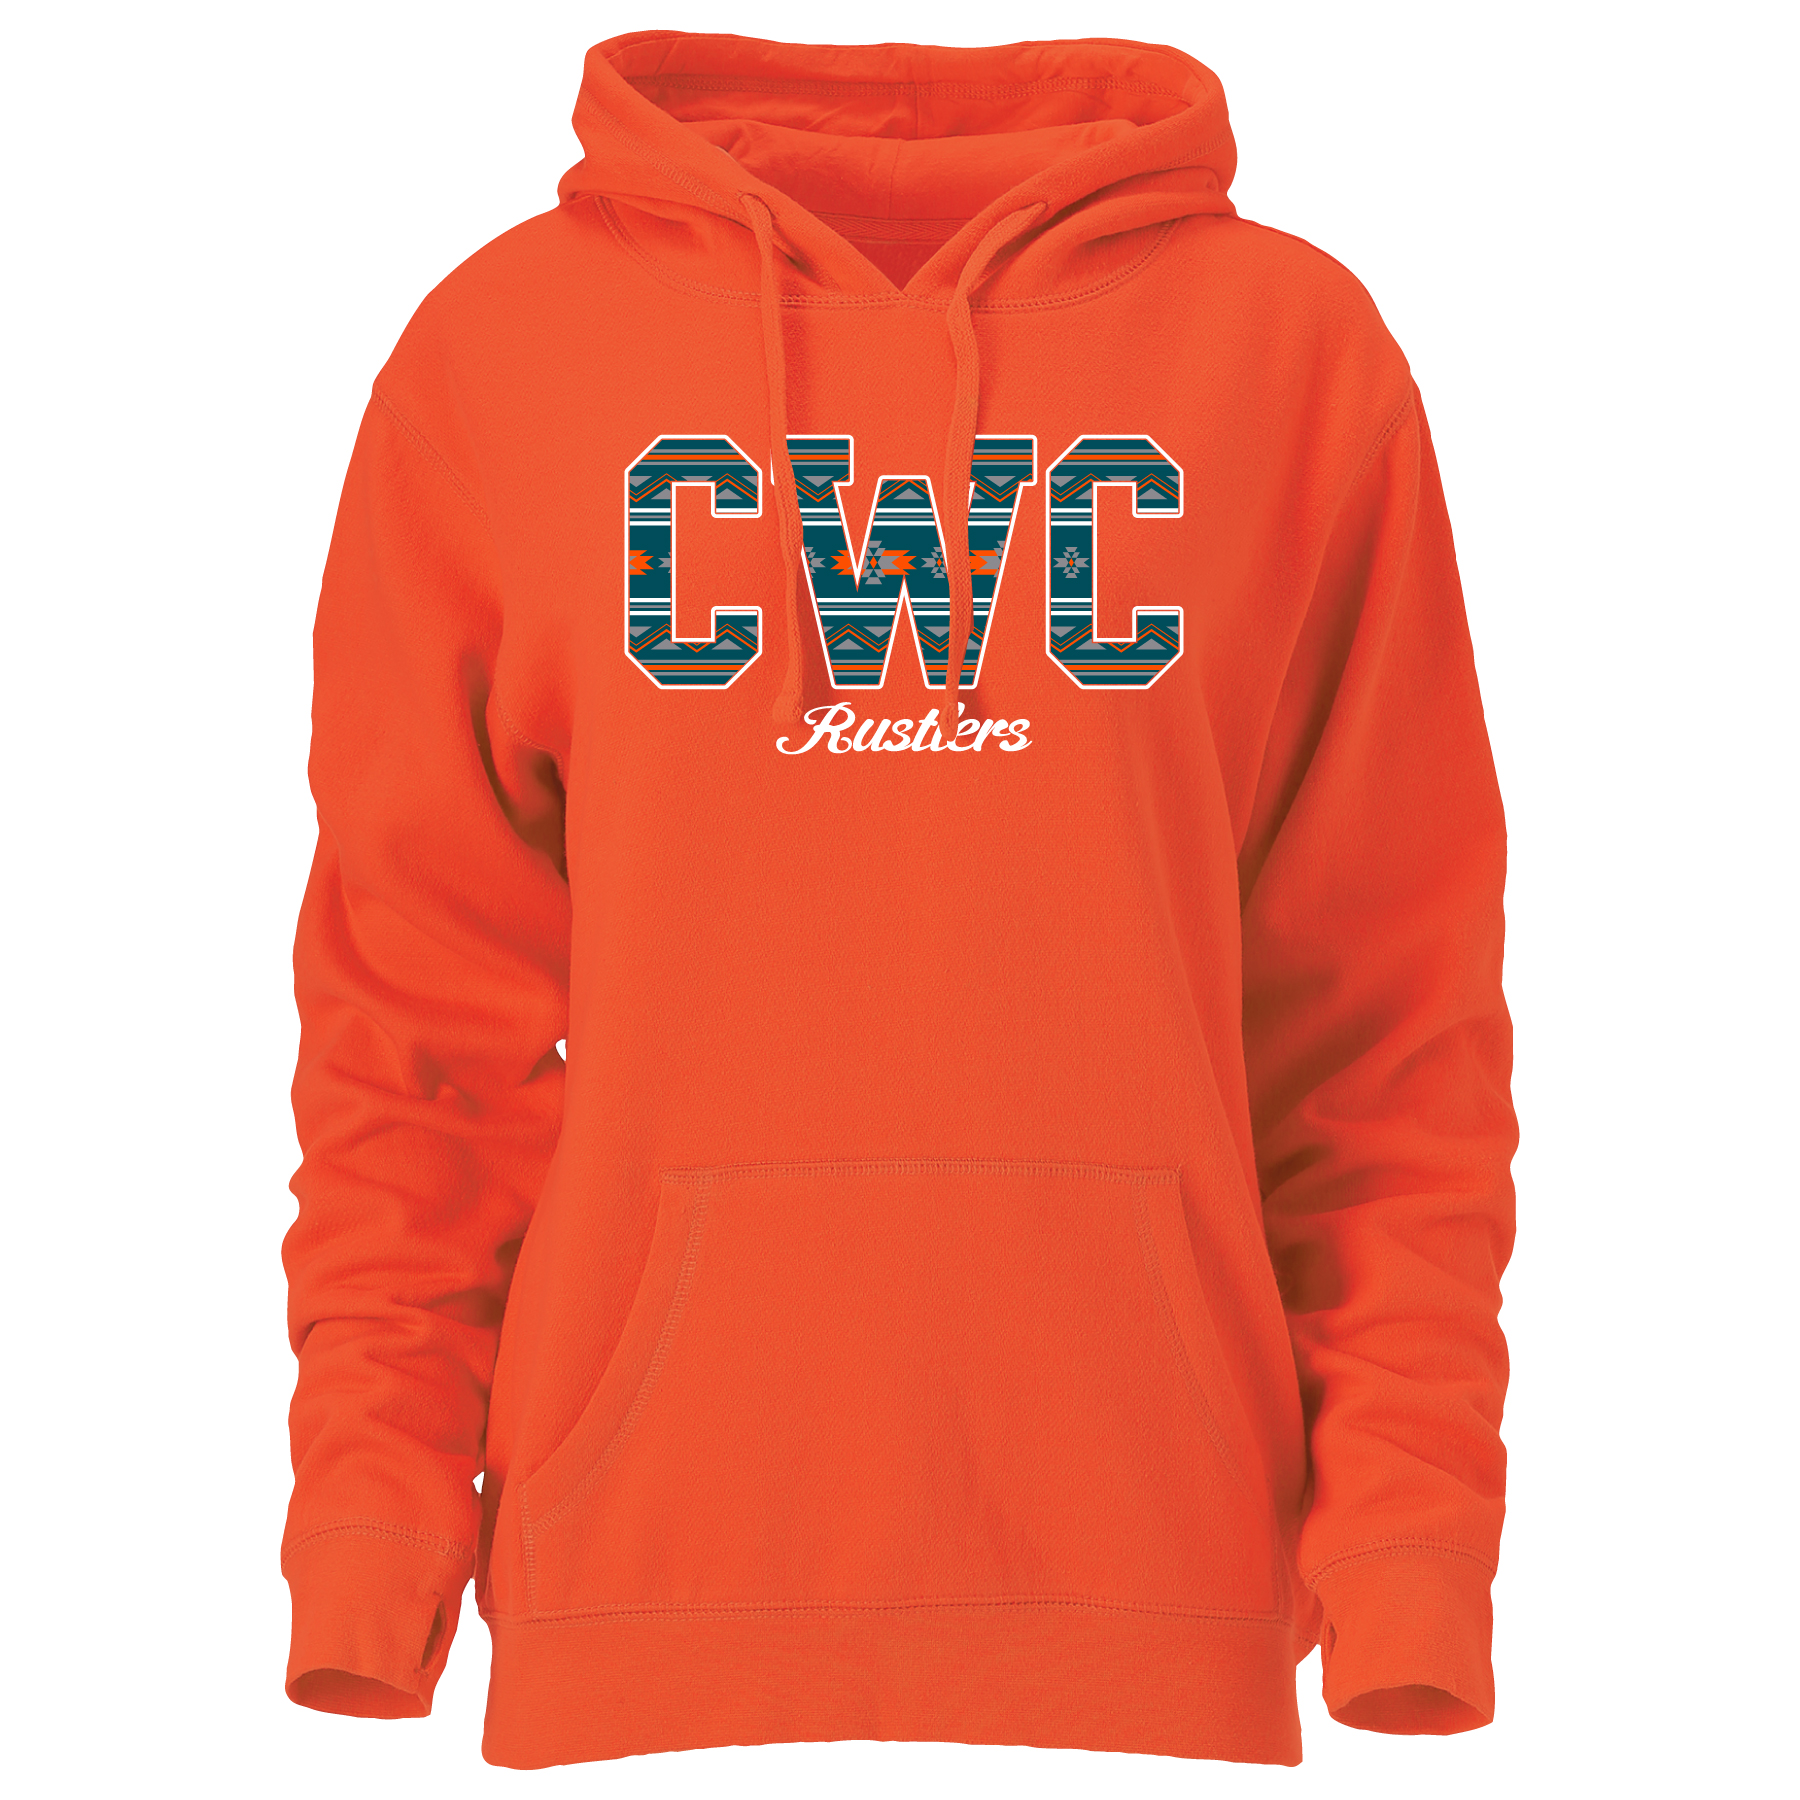 CWC Rustlers Hoodie with Thumb Holes